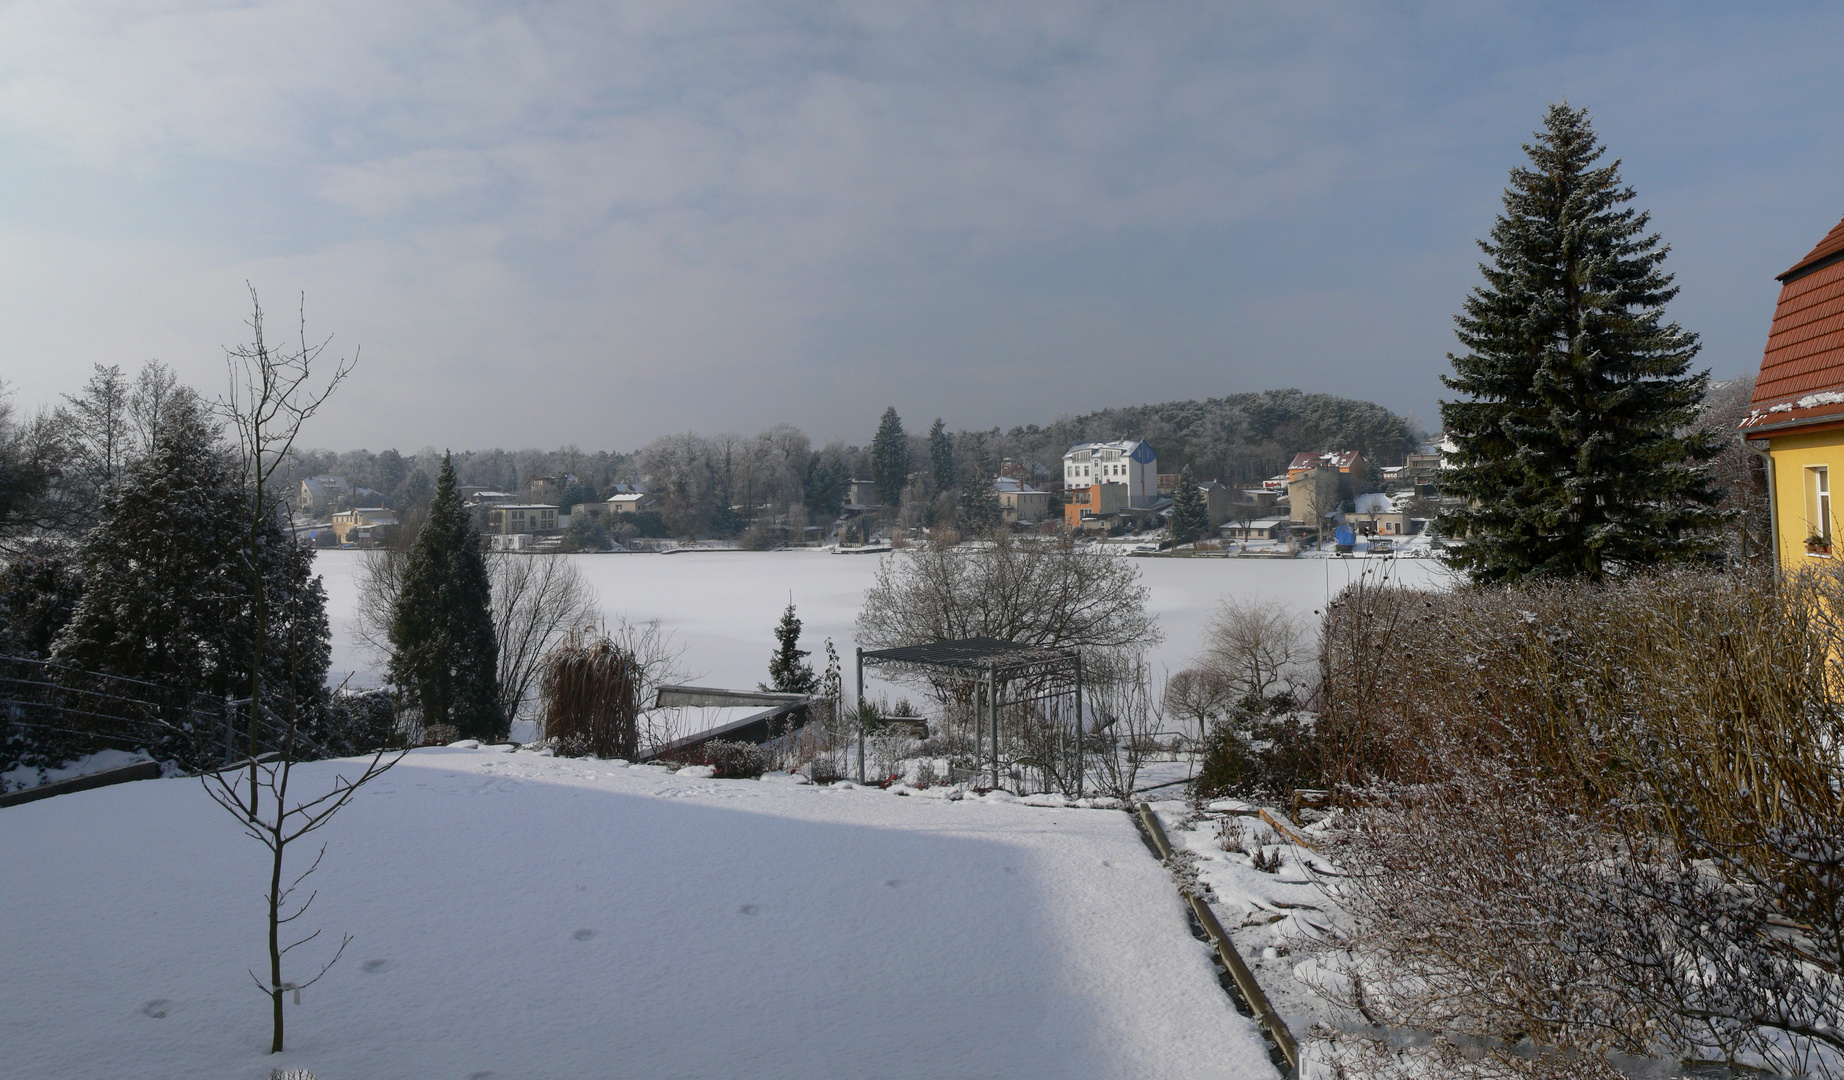 Winterpanorama Flakensee